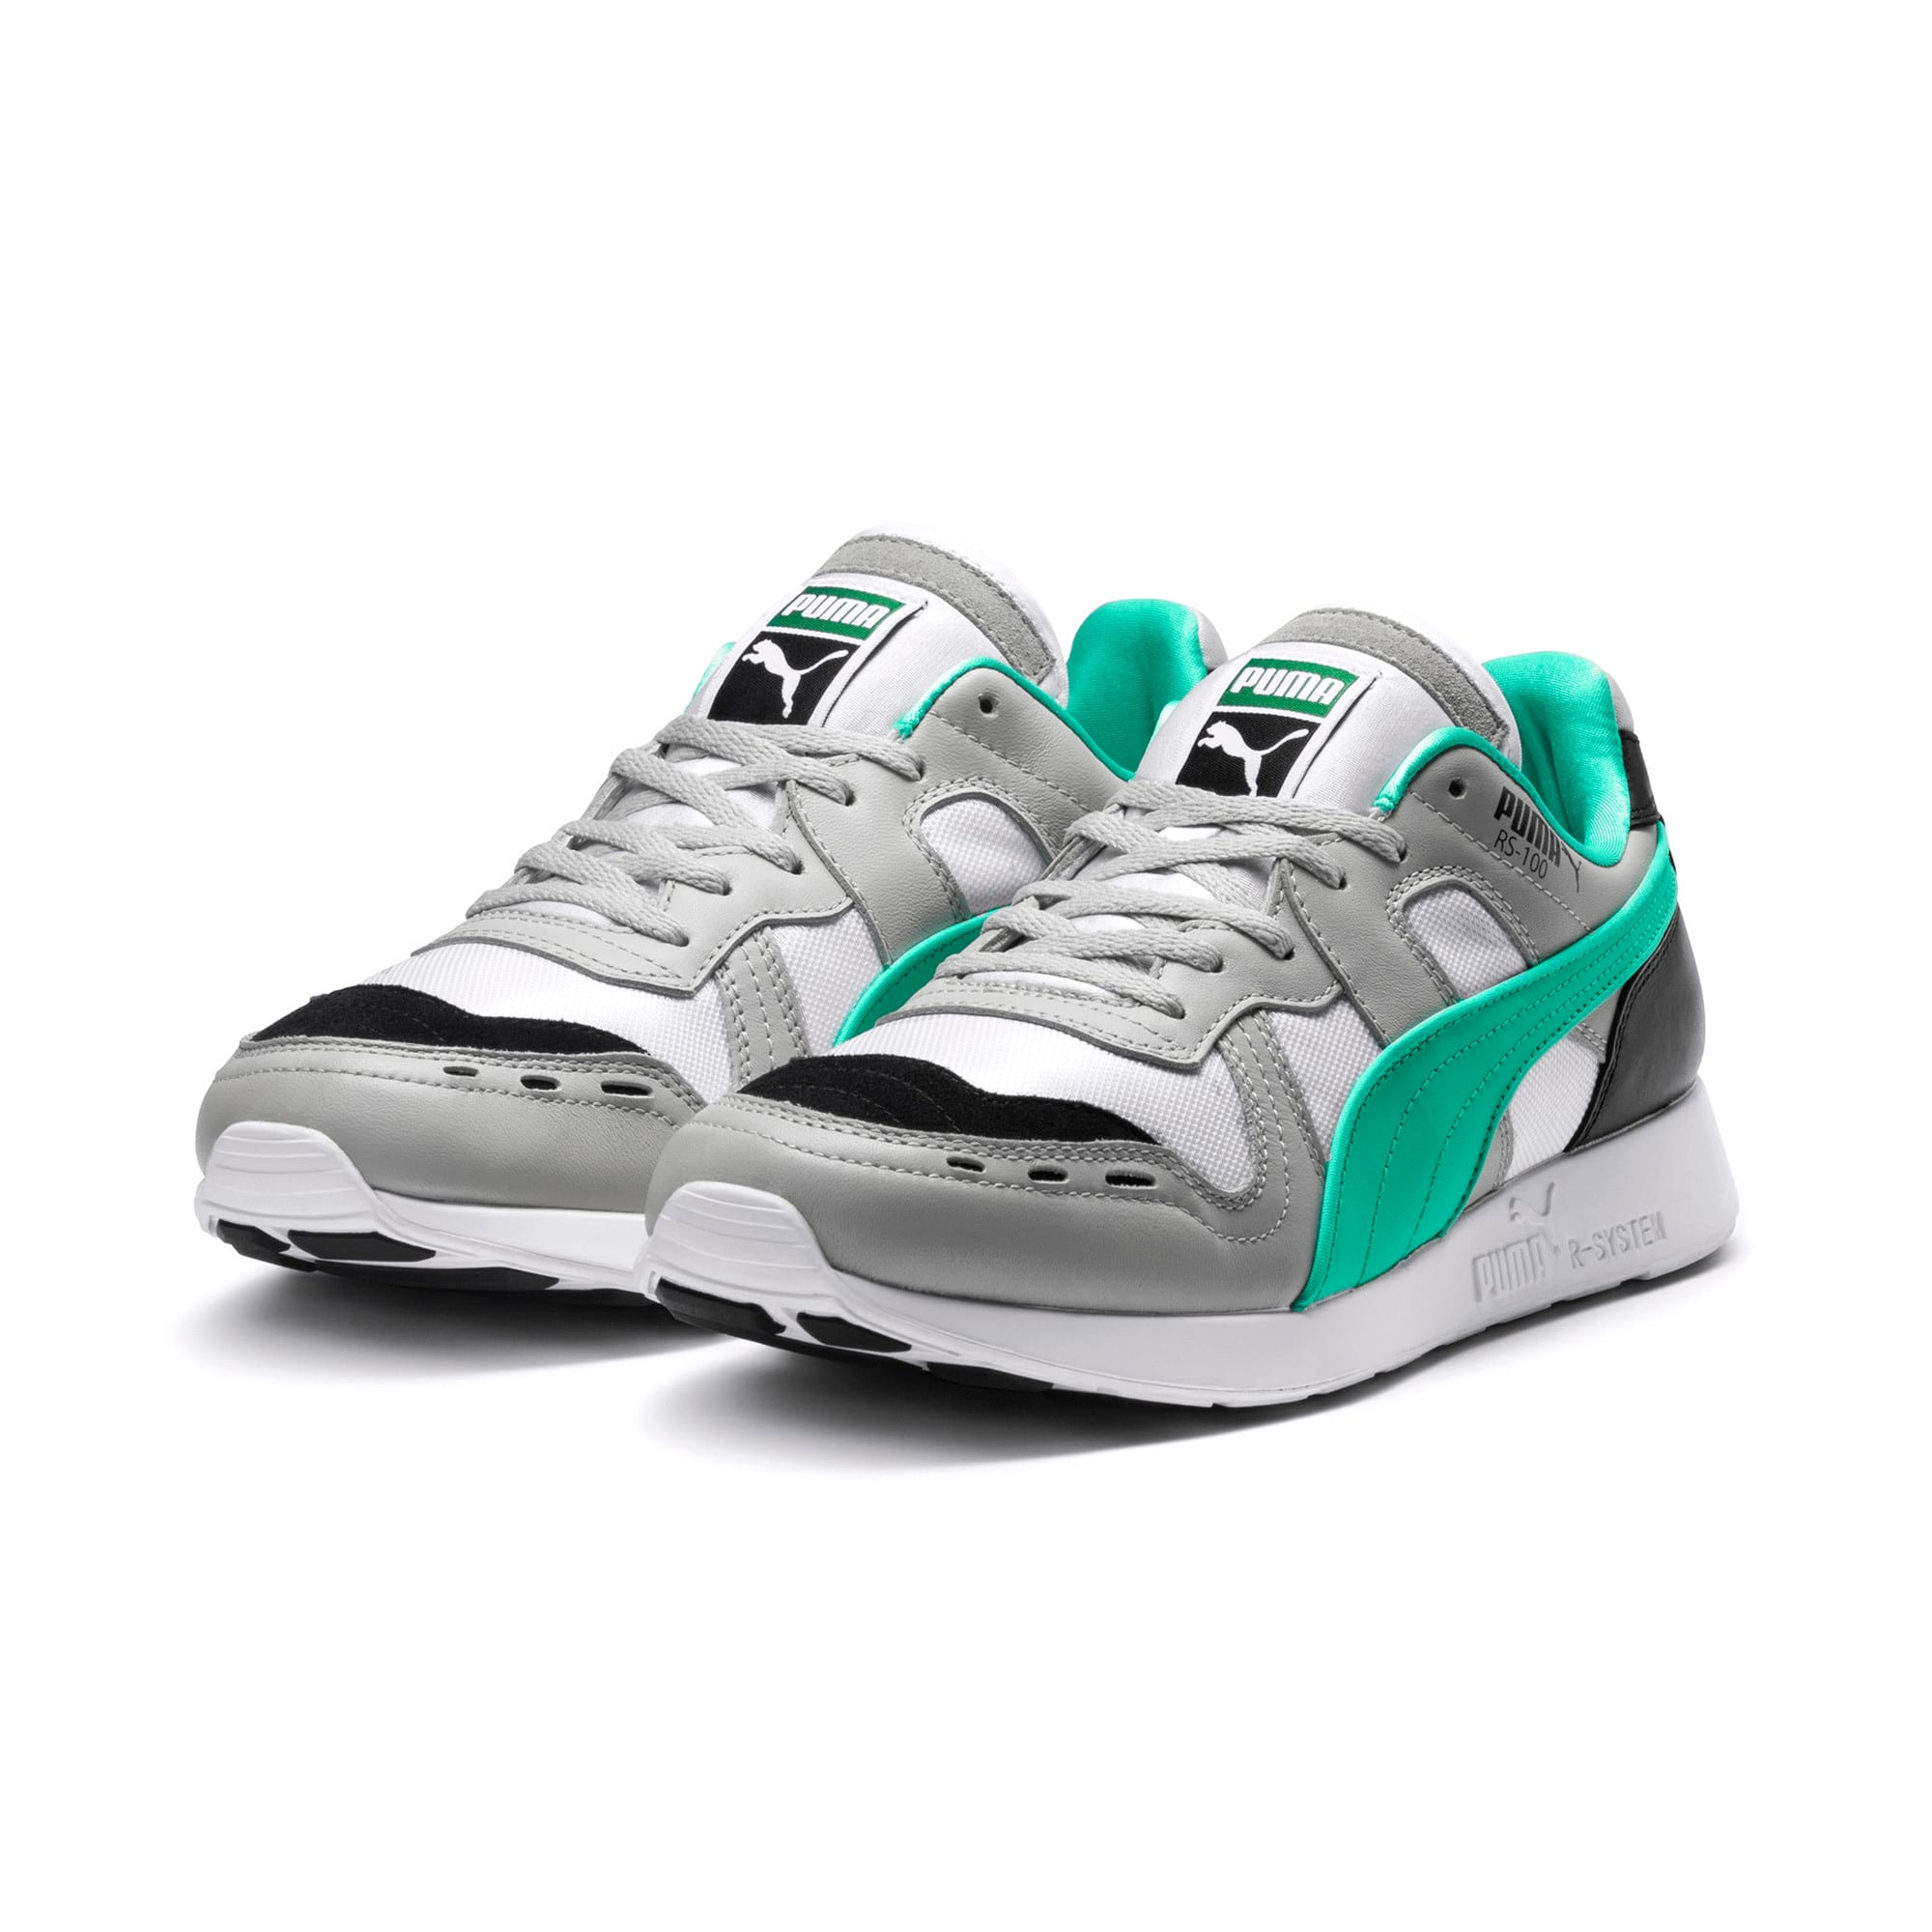 Thumbnail 2 of RS-100 RE-INVENTION, GrayViolet-BiscayGreen-White, medium-JPN